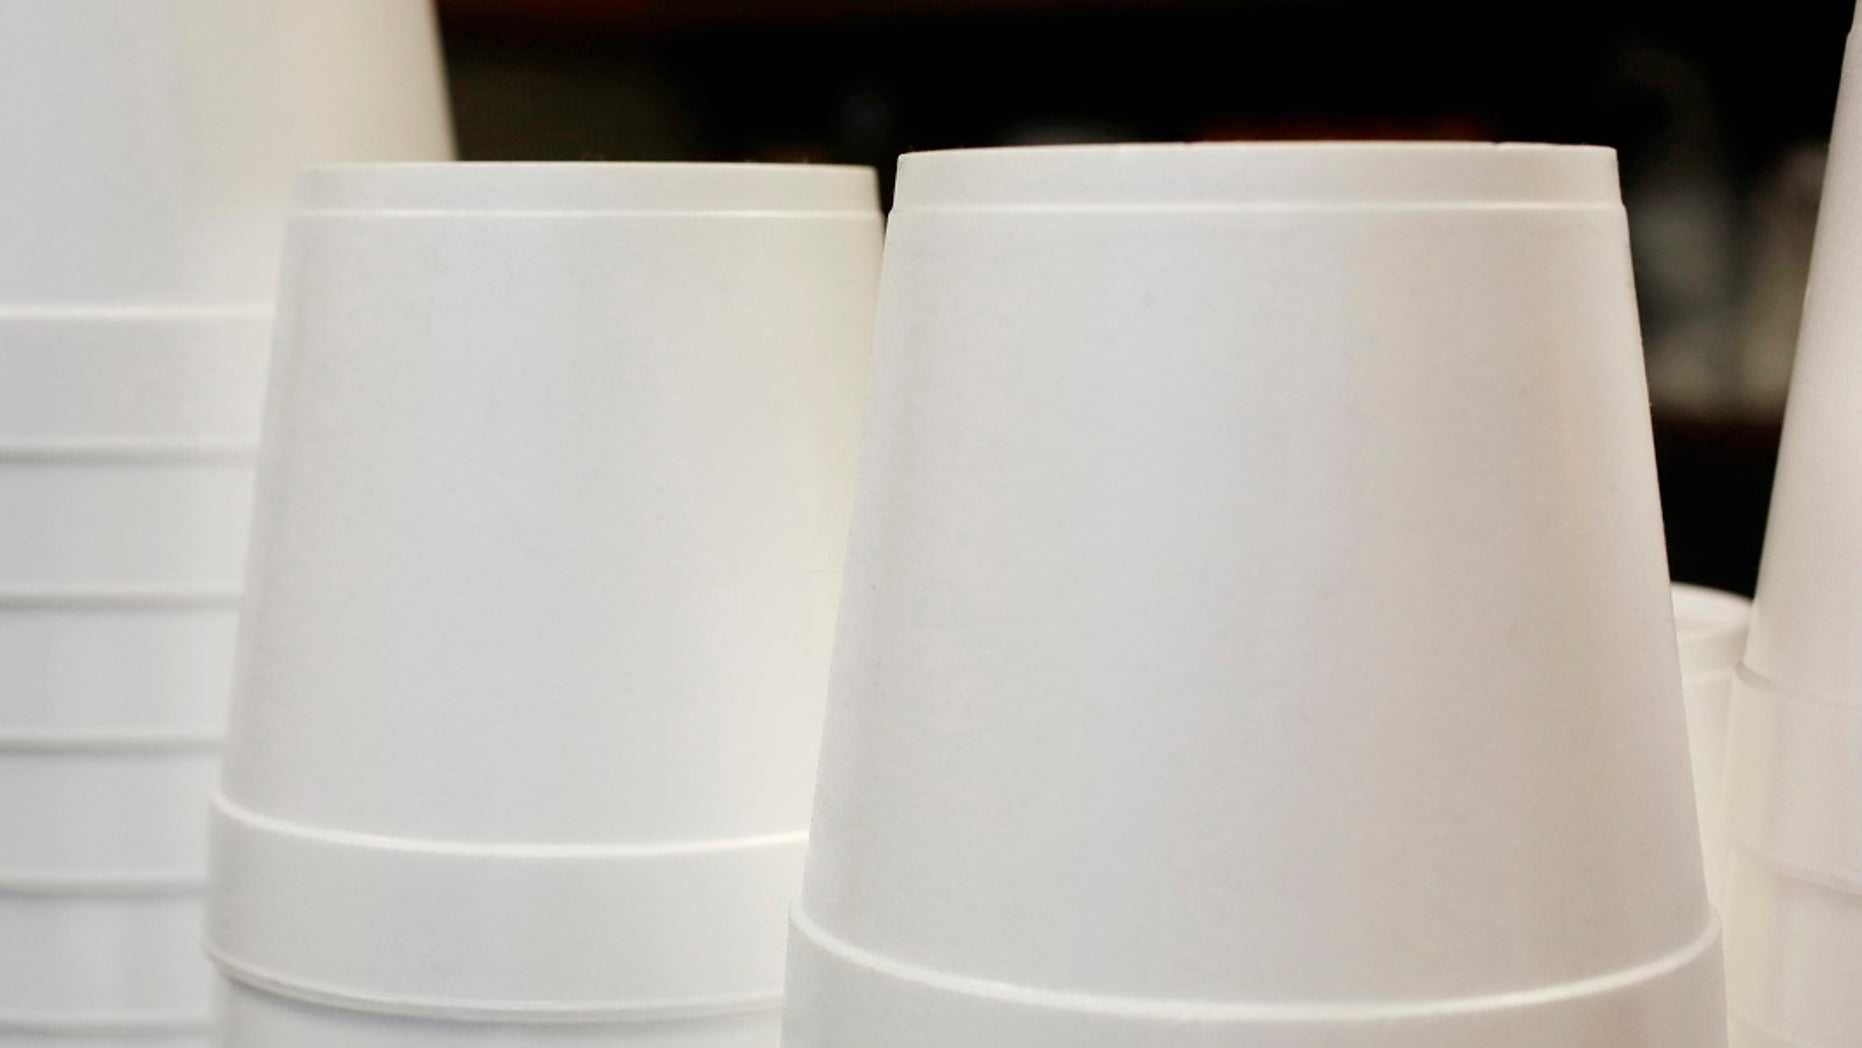 New York City has officially banned plastic foam coffee cups, takeout containers, packing peanuts and more.